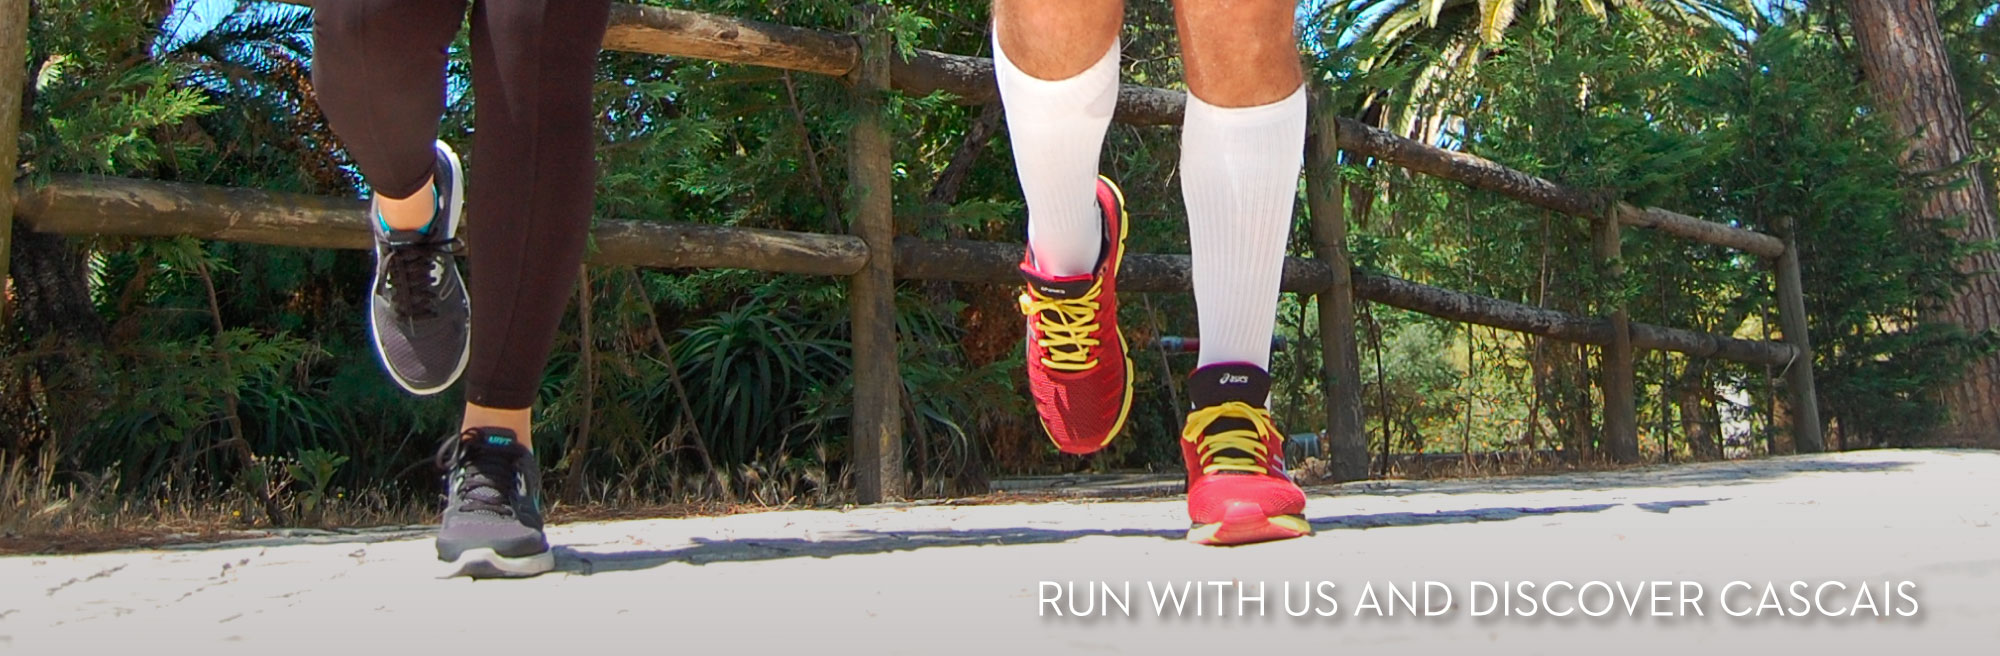 Guided Runnning Tours Cascais